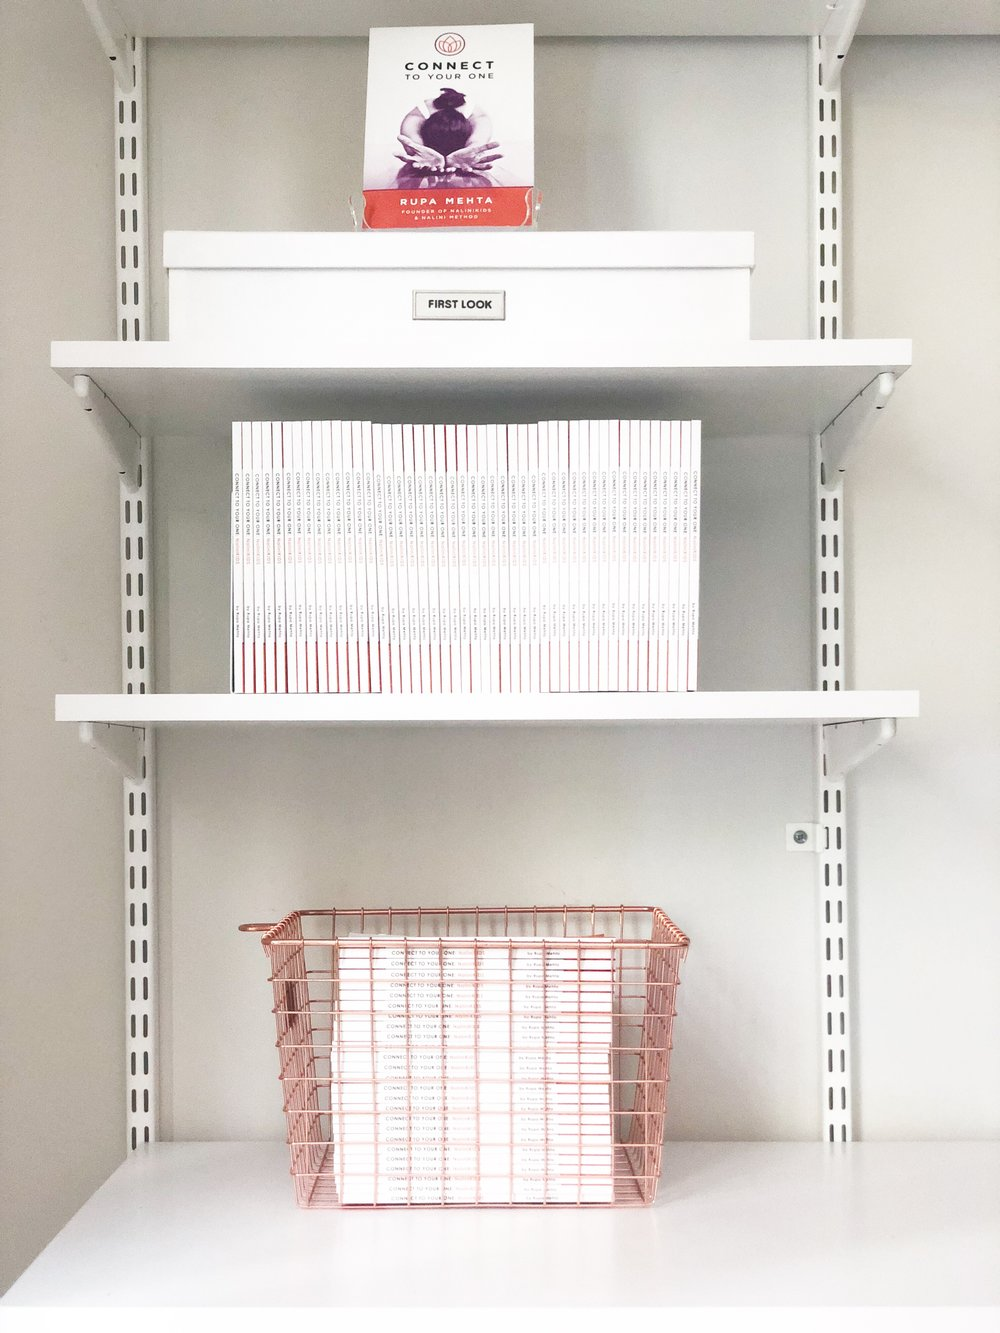 BOOKENDS ARE YOUR FRIENDS - Bookends are used to hold books upright on the shelves. I love these bookends from The Container Store because they have a slim profile and create a floating look. You can't even see them!The white document box matches the magazine file boxes we used earlier and this amazing Copper basket I found at Home Goods holds extra copies of books. The open basket makes it easy for Rupa and her team to grab books on the go and still keeps things stylish.